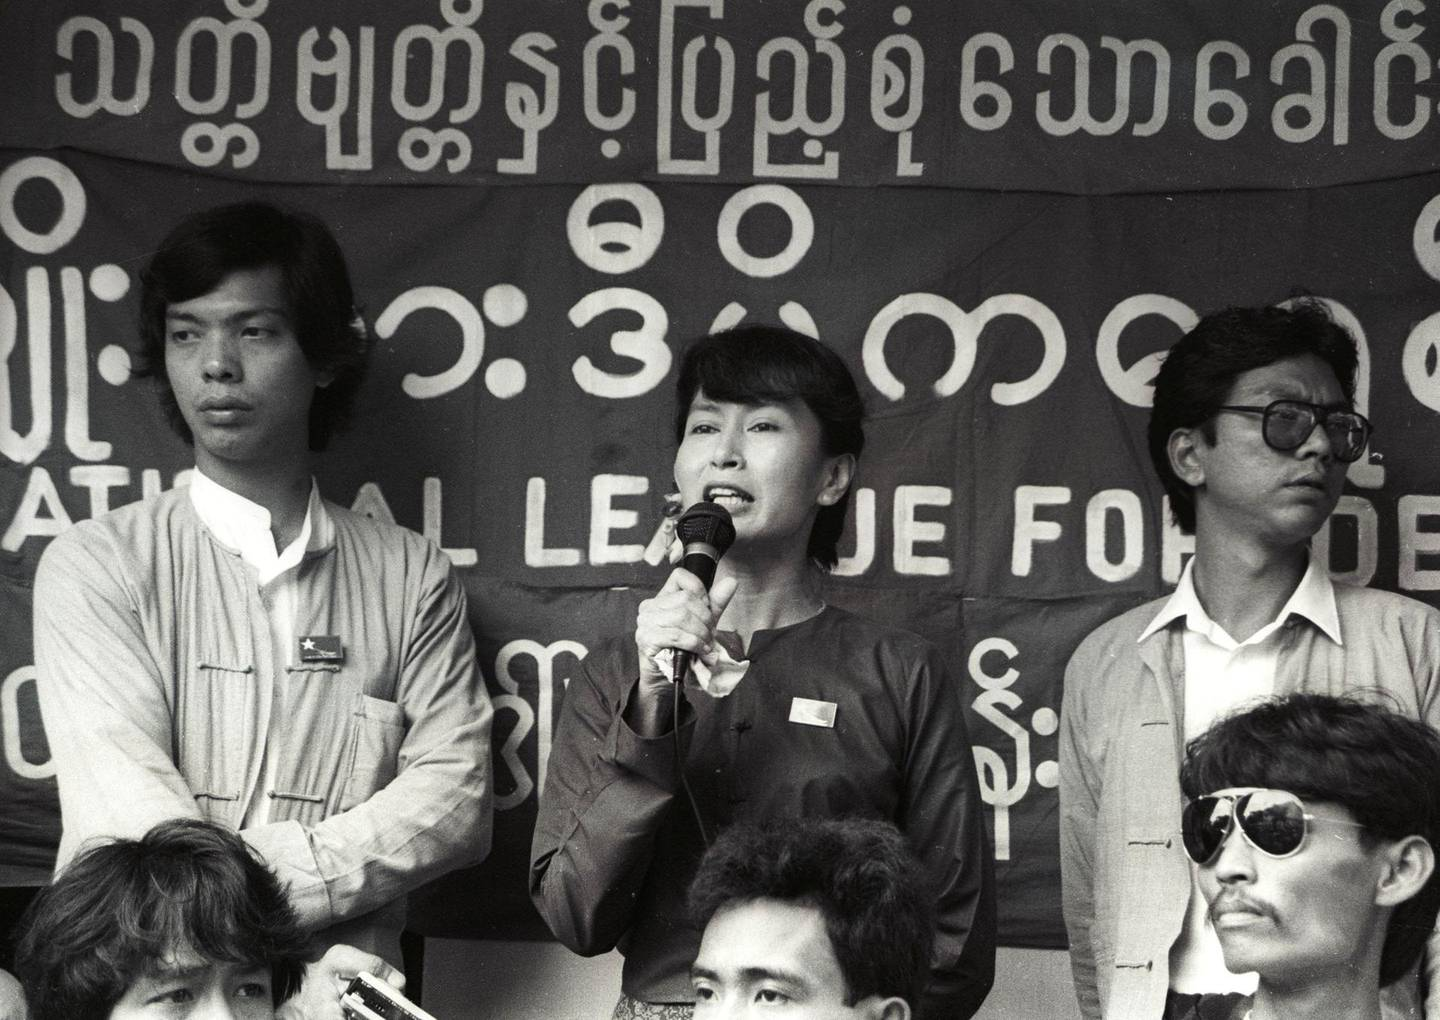 FILE PHOTO: Aung San Suu Kyi, main opposition leader in Myanmar, addresses crowd of supporters in Rangoon July 7, 1989.   REUTERS/Jonathan Karp/File Photo